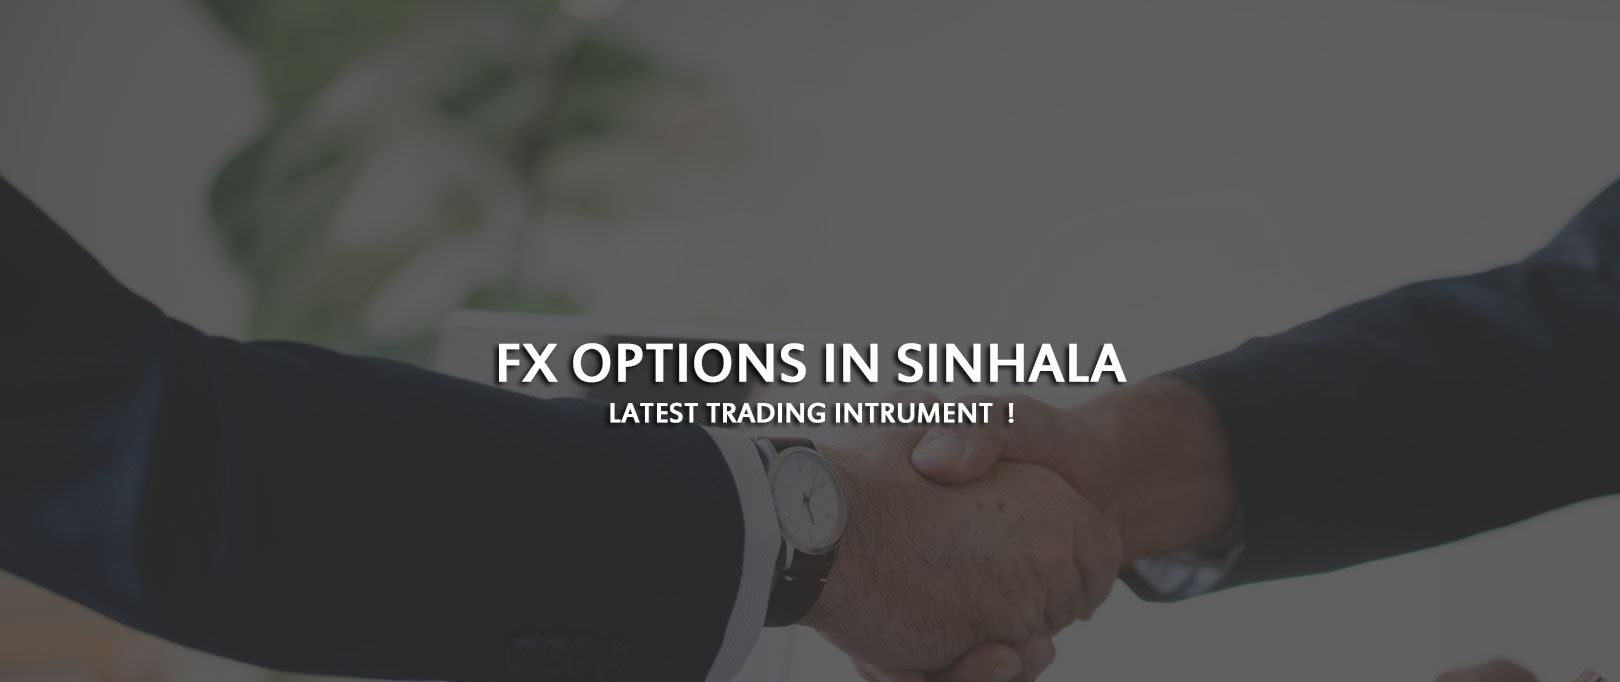 FX Options in Sinhala